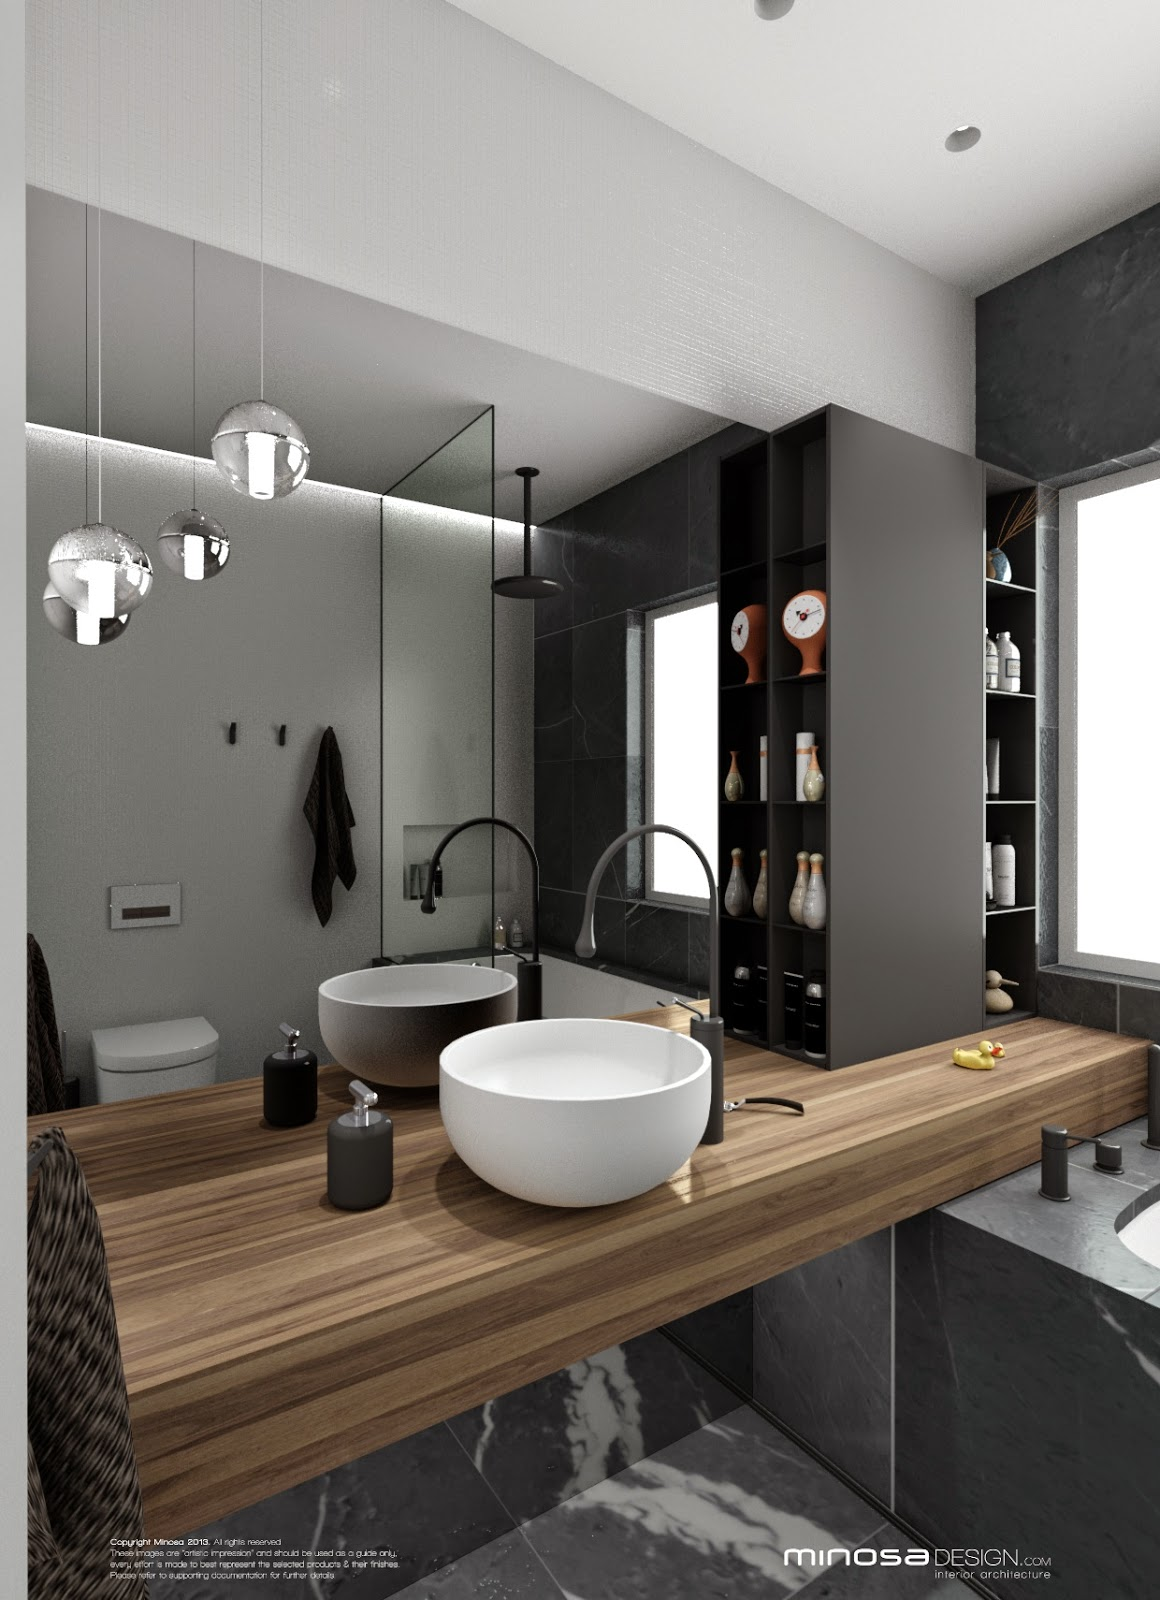 Minosa bathroom design small space feels large - Toilet design small space property ...